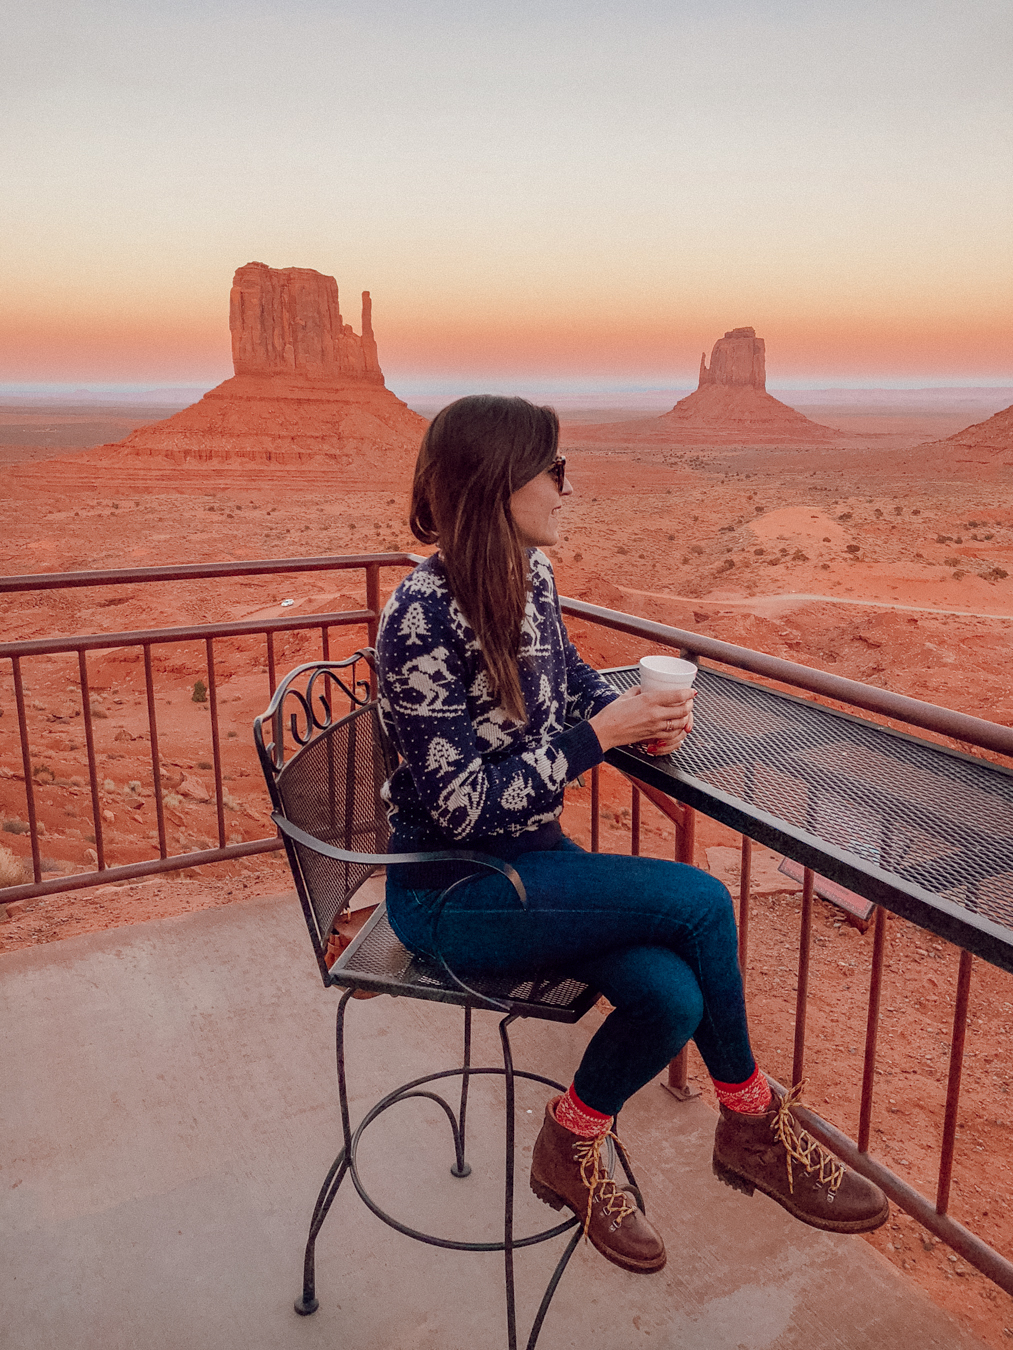 Blog-Mode-And-the-City-Lifestyle-voyage-roadtrip-USA-cote-ouest-grand-canyon-monument-valley-19